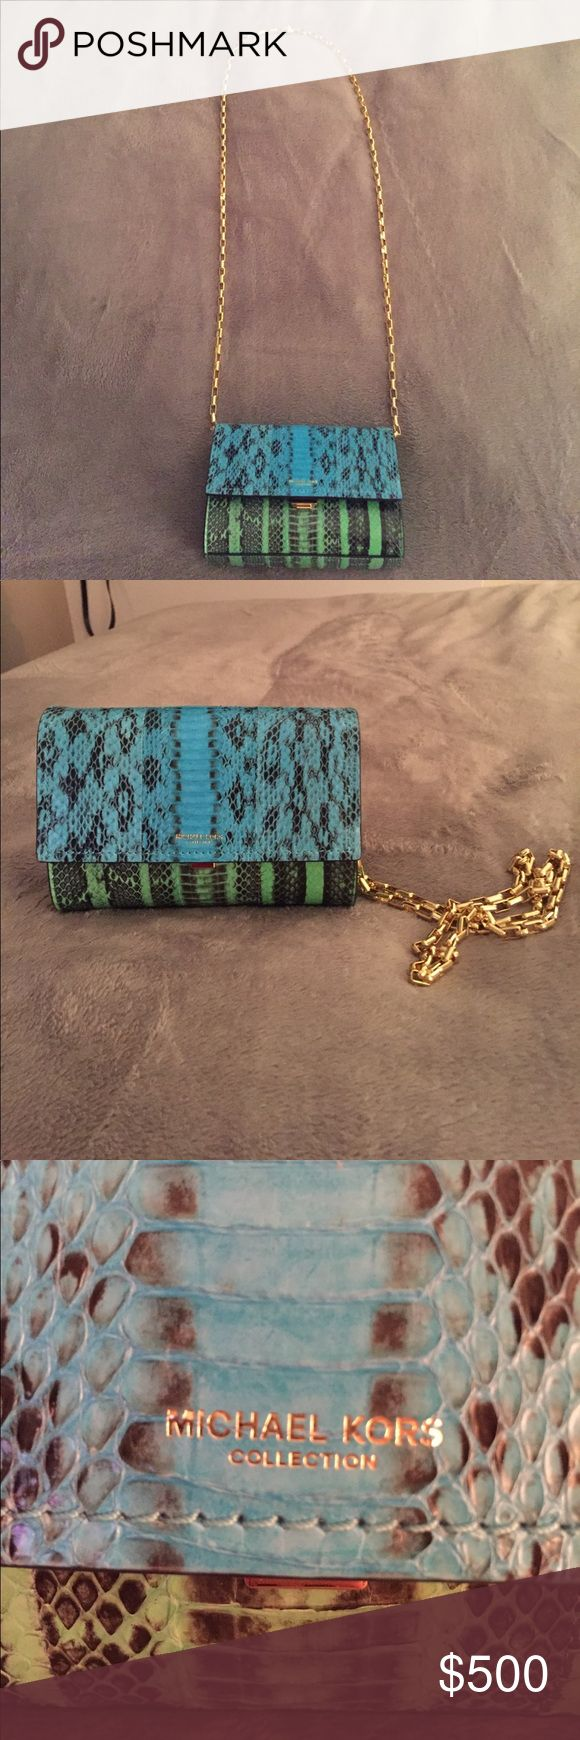 ✨Make an offer!✨Michael Kors Collection Yasmeen ELIGIBLE FOR POSH CONCIERGE! One of a kind green and blue color way, never produced! Bag never worn! 100% genuine python. Goat Suede lining. Michael Kors Bags Crossbody Bags